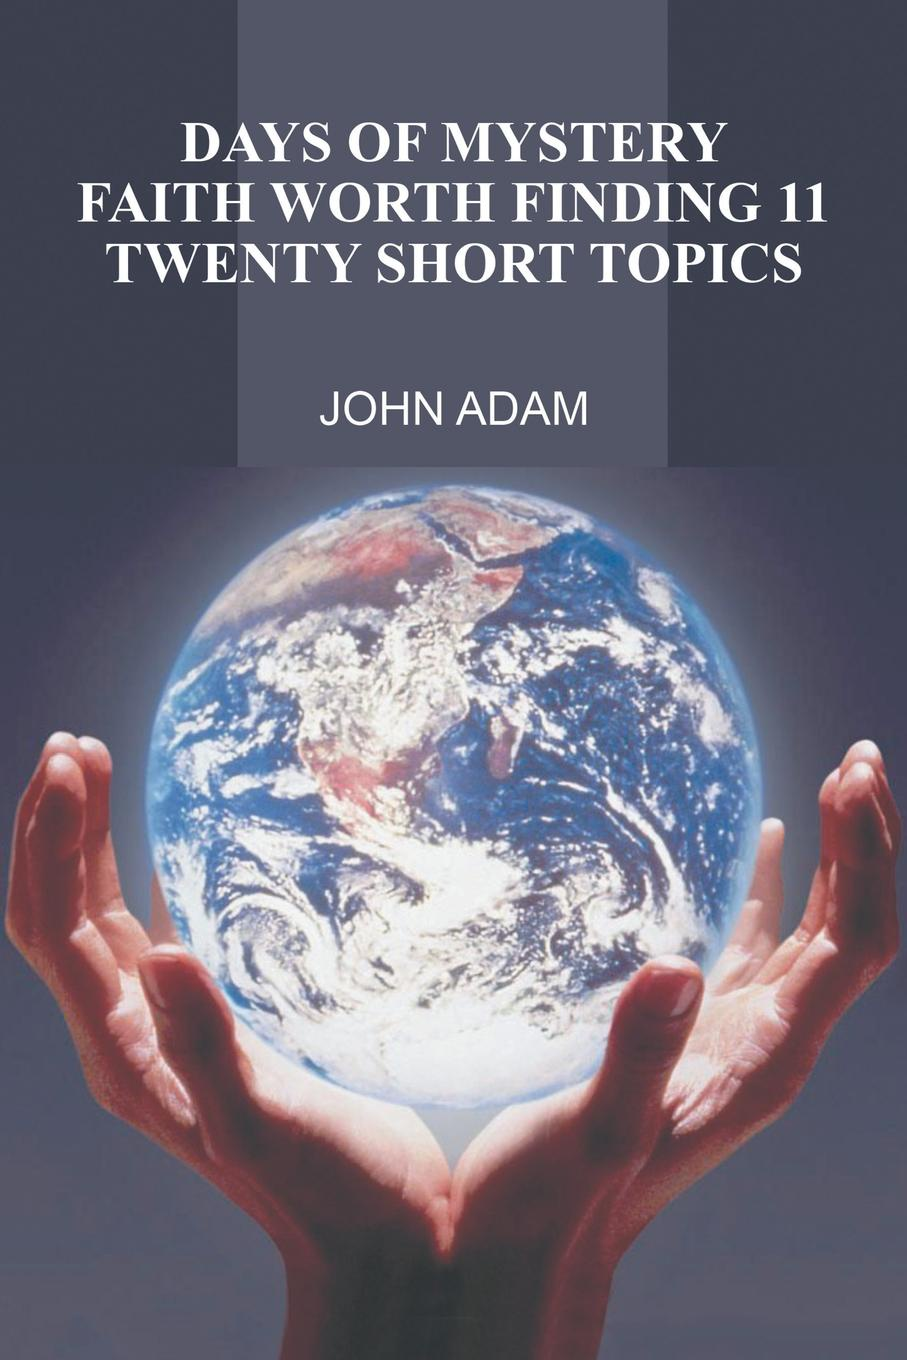 John Adam. Days of Mystery. Faith Worth Finding Ii: Twenty Short Topics